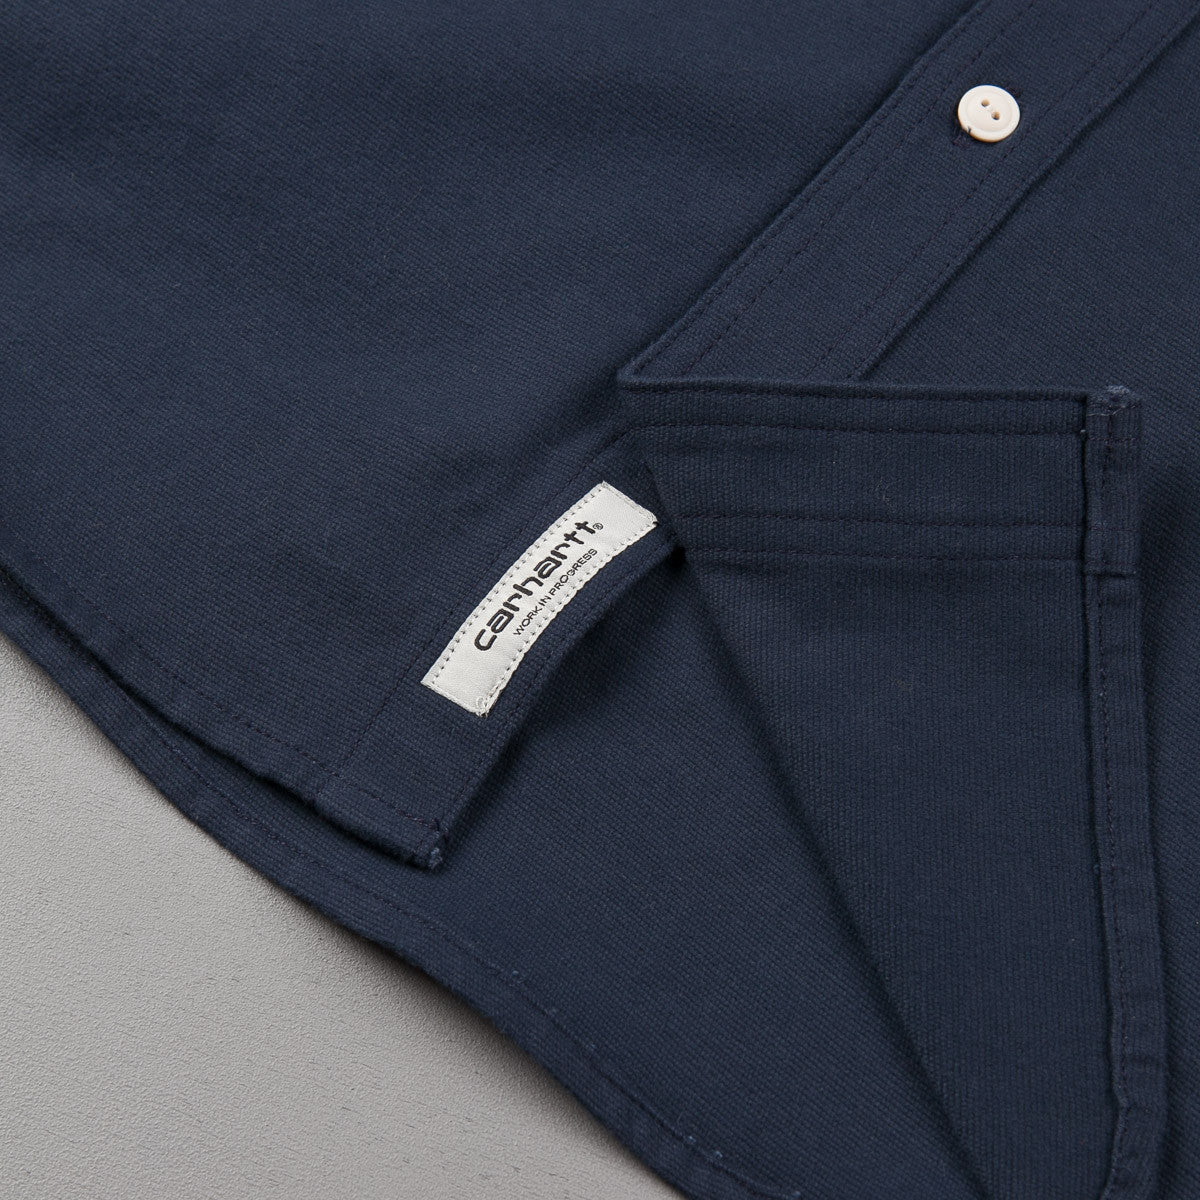 Carhartt Tony Long Sleeve Shirt - Navy